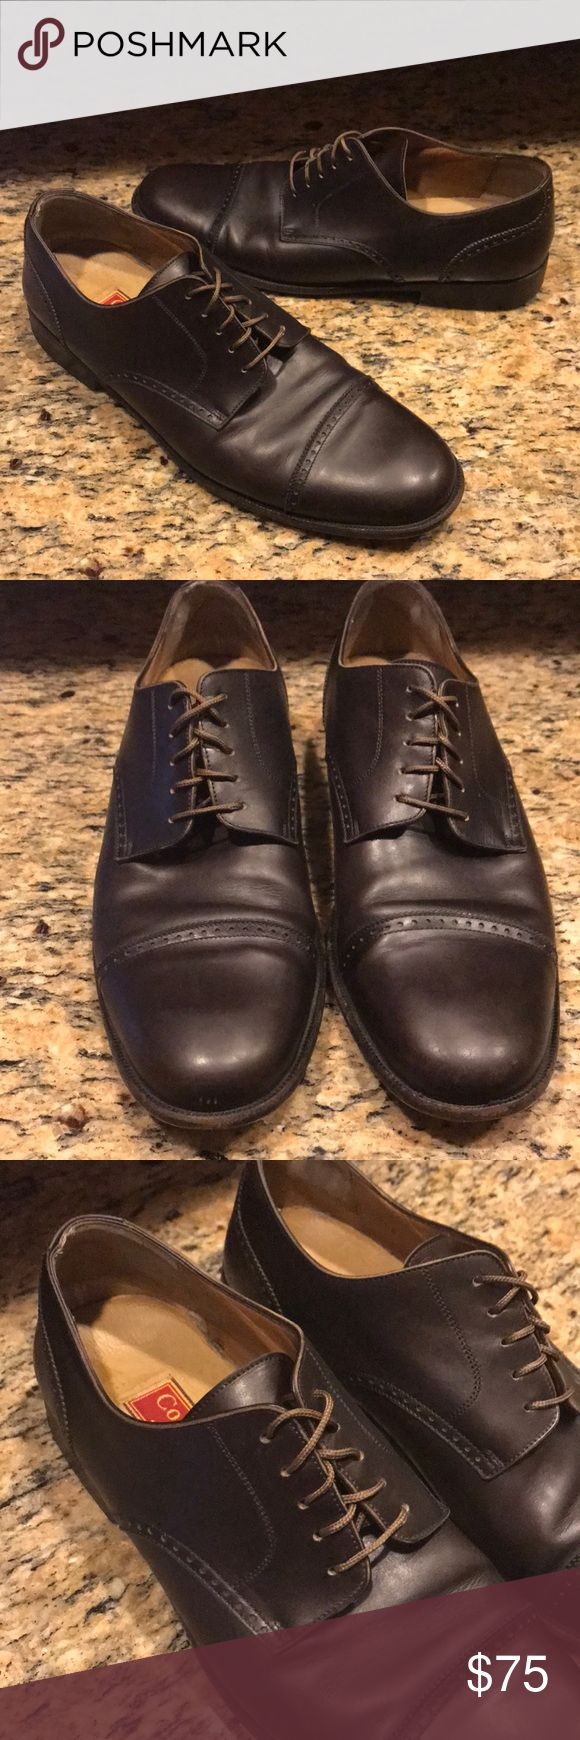 {Cole Haan} Brown Oxford Dress Shoes 👞 Pre-owned in great condition! Minor blemishes around the front (see pictures). Cole Haan Shoes Oxfords & Derbys